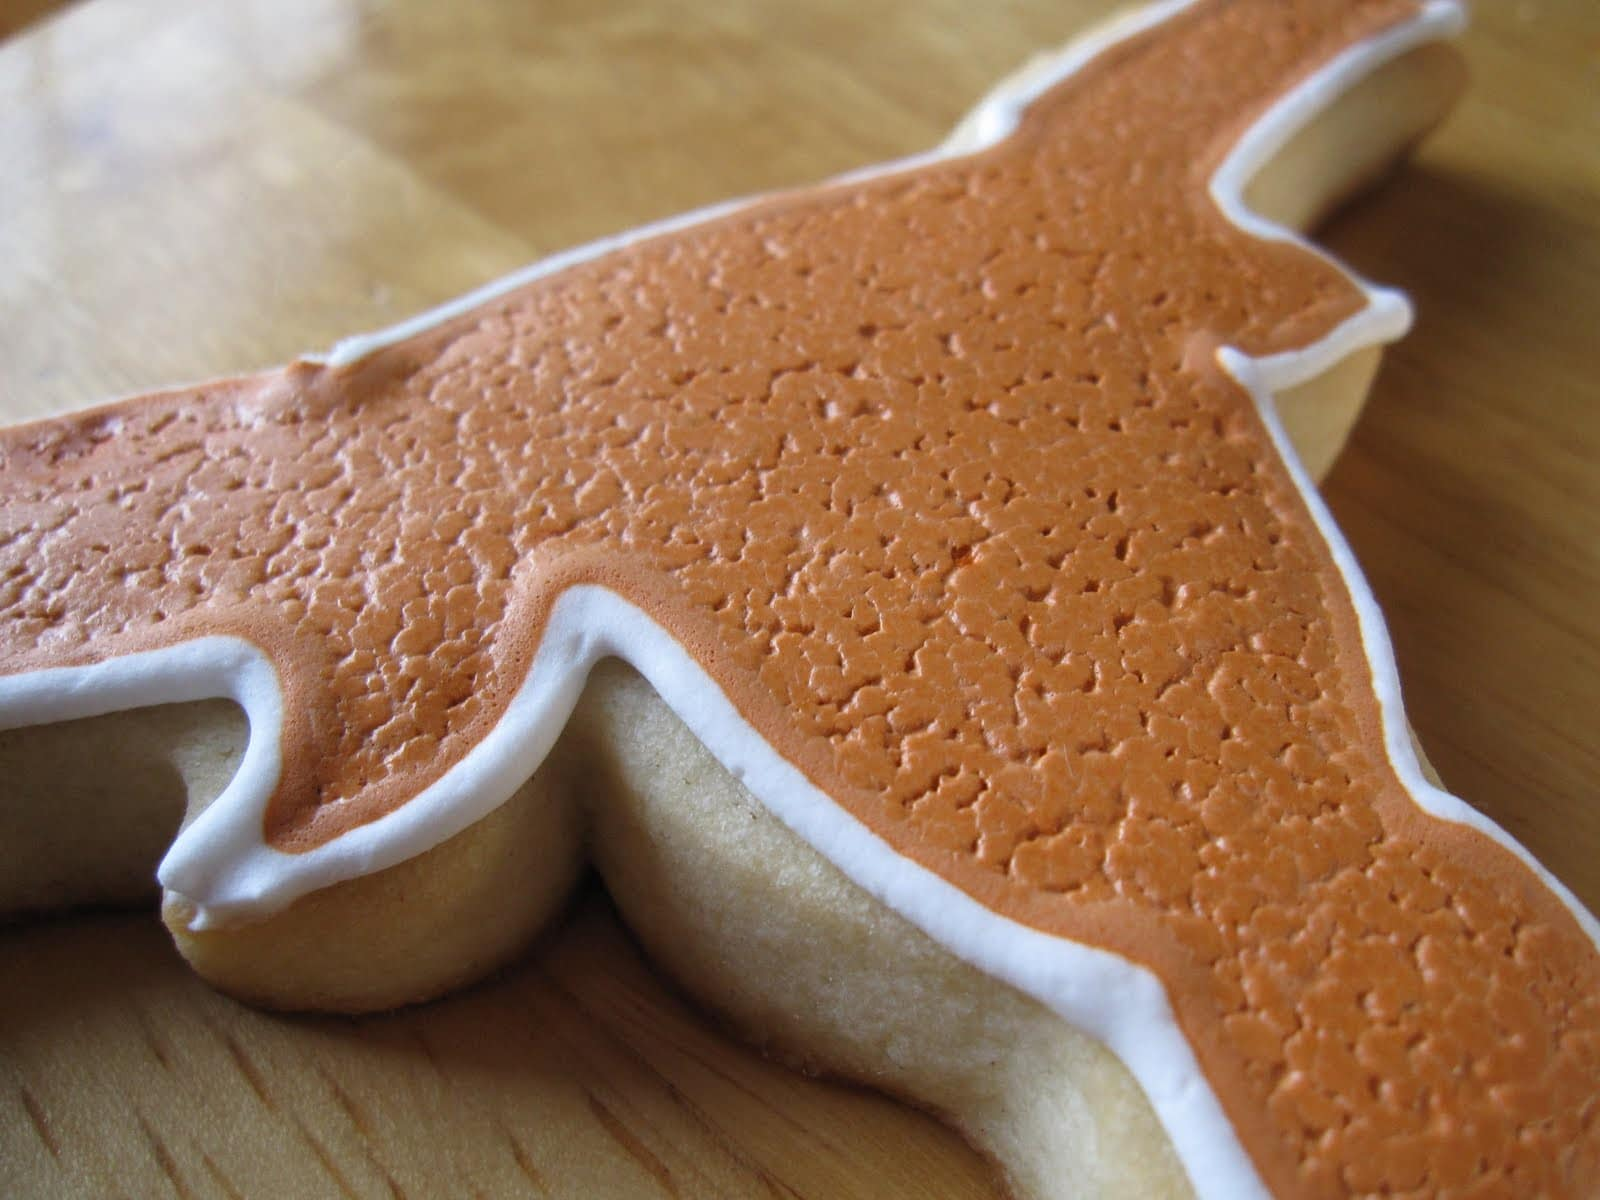 Close-up of Texas Longhorn cookie with leather-textured icing